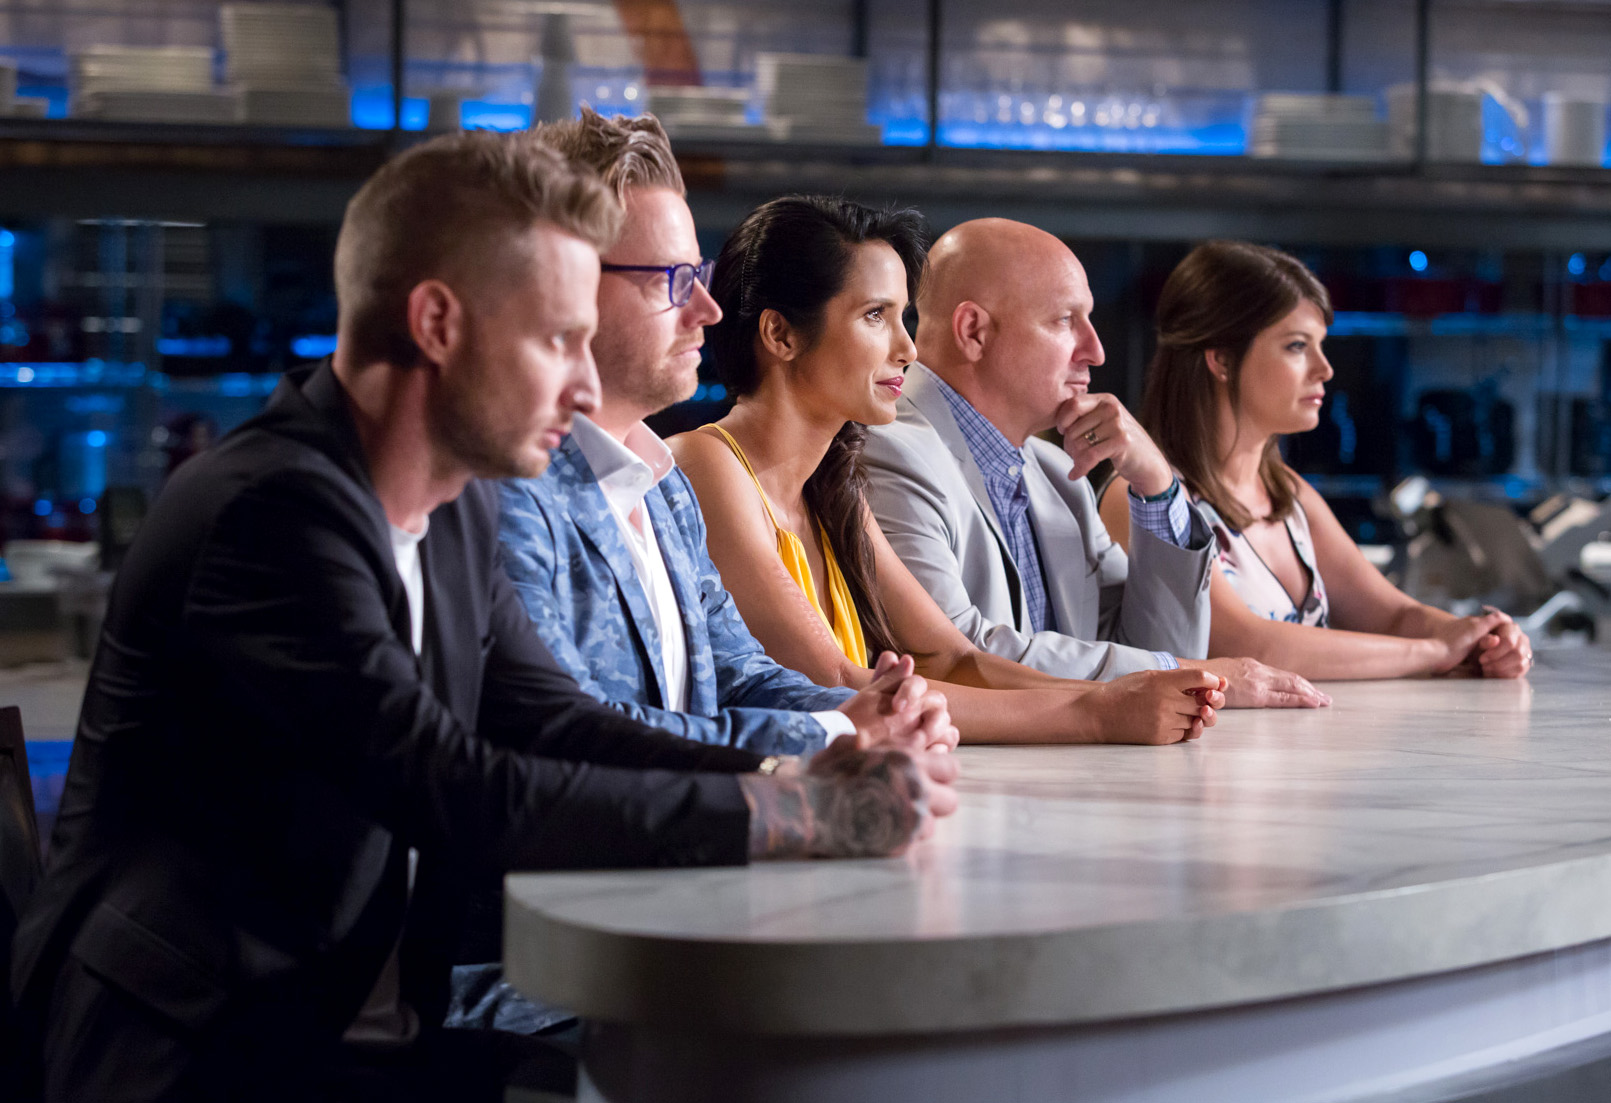 Top Chef Episode 1307